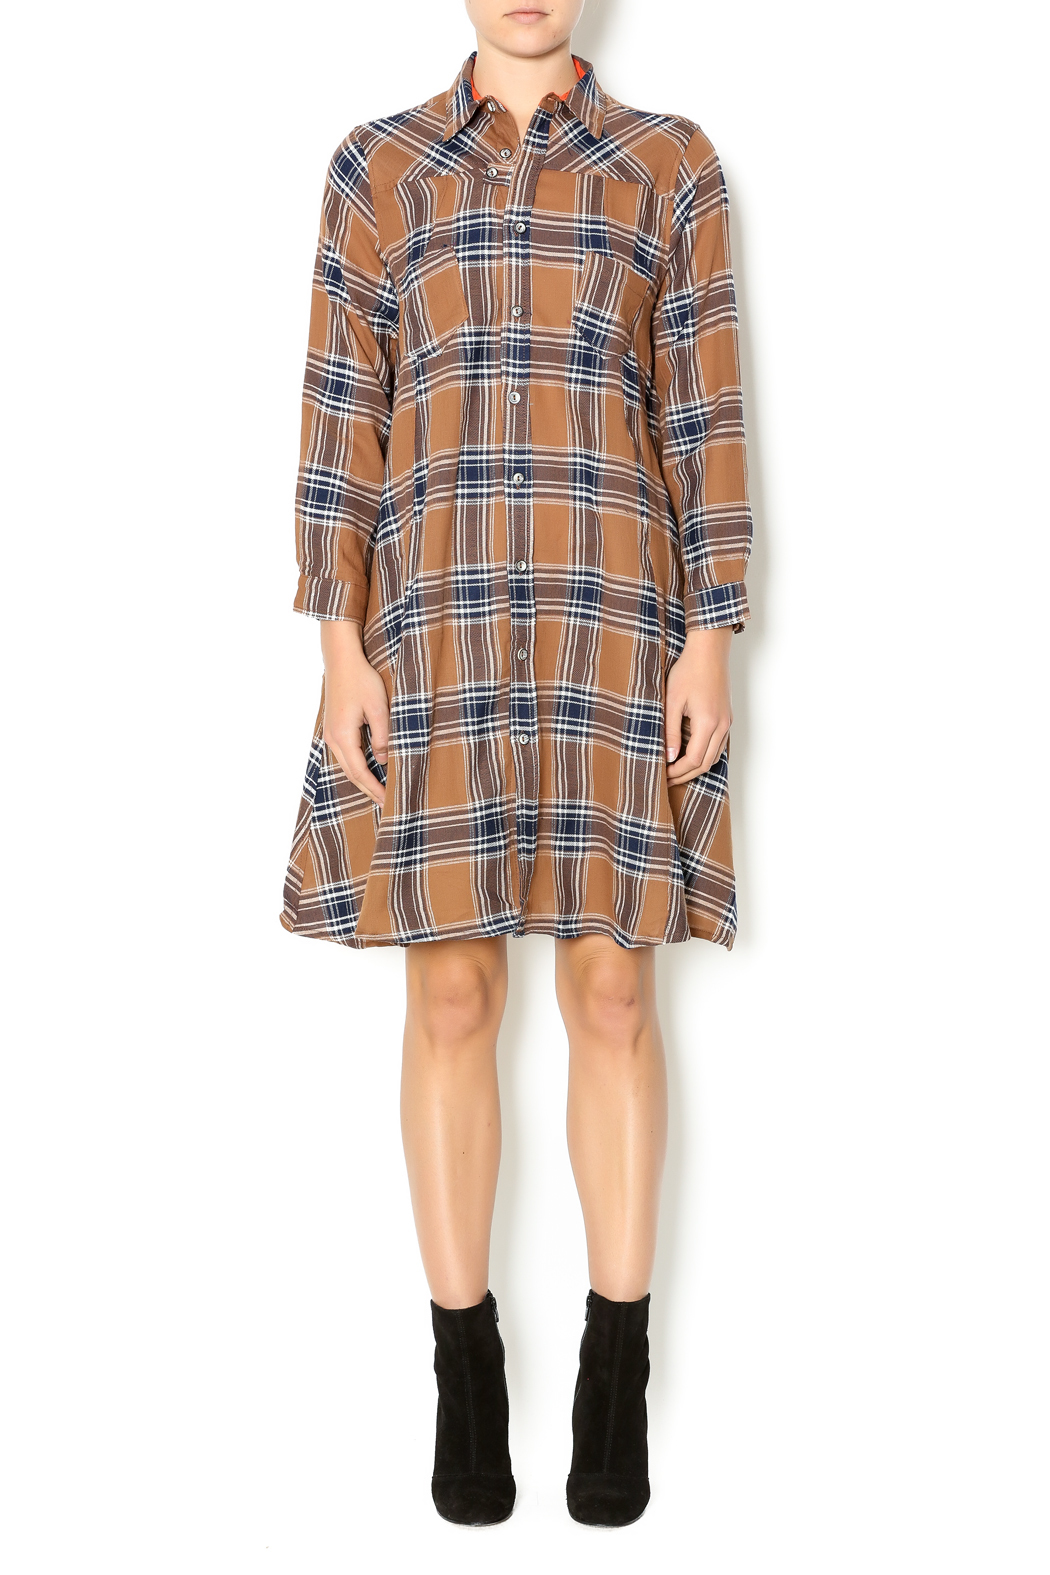 NU New York Fearless Flannel Dress - Front Full Image